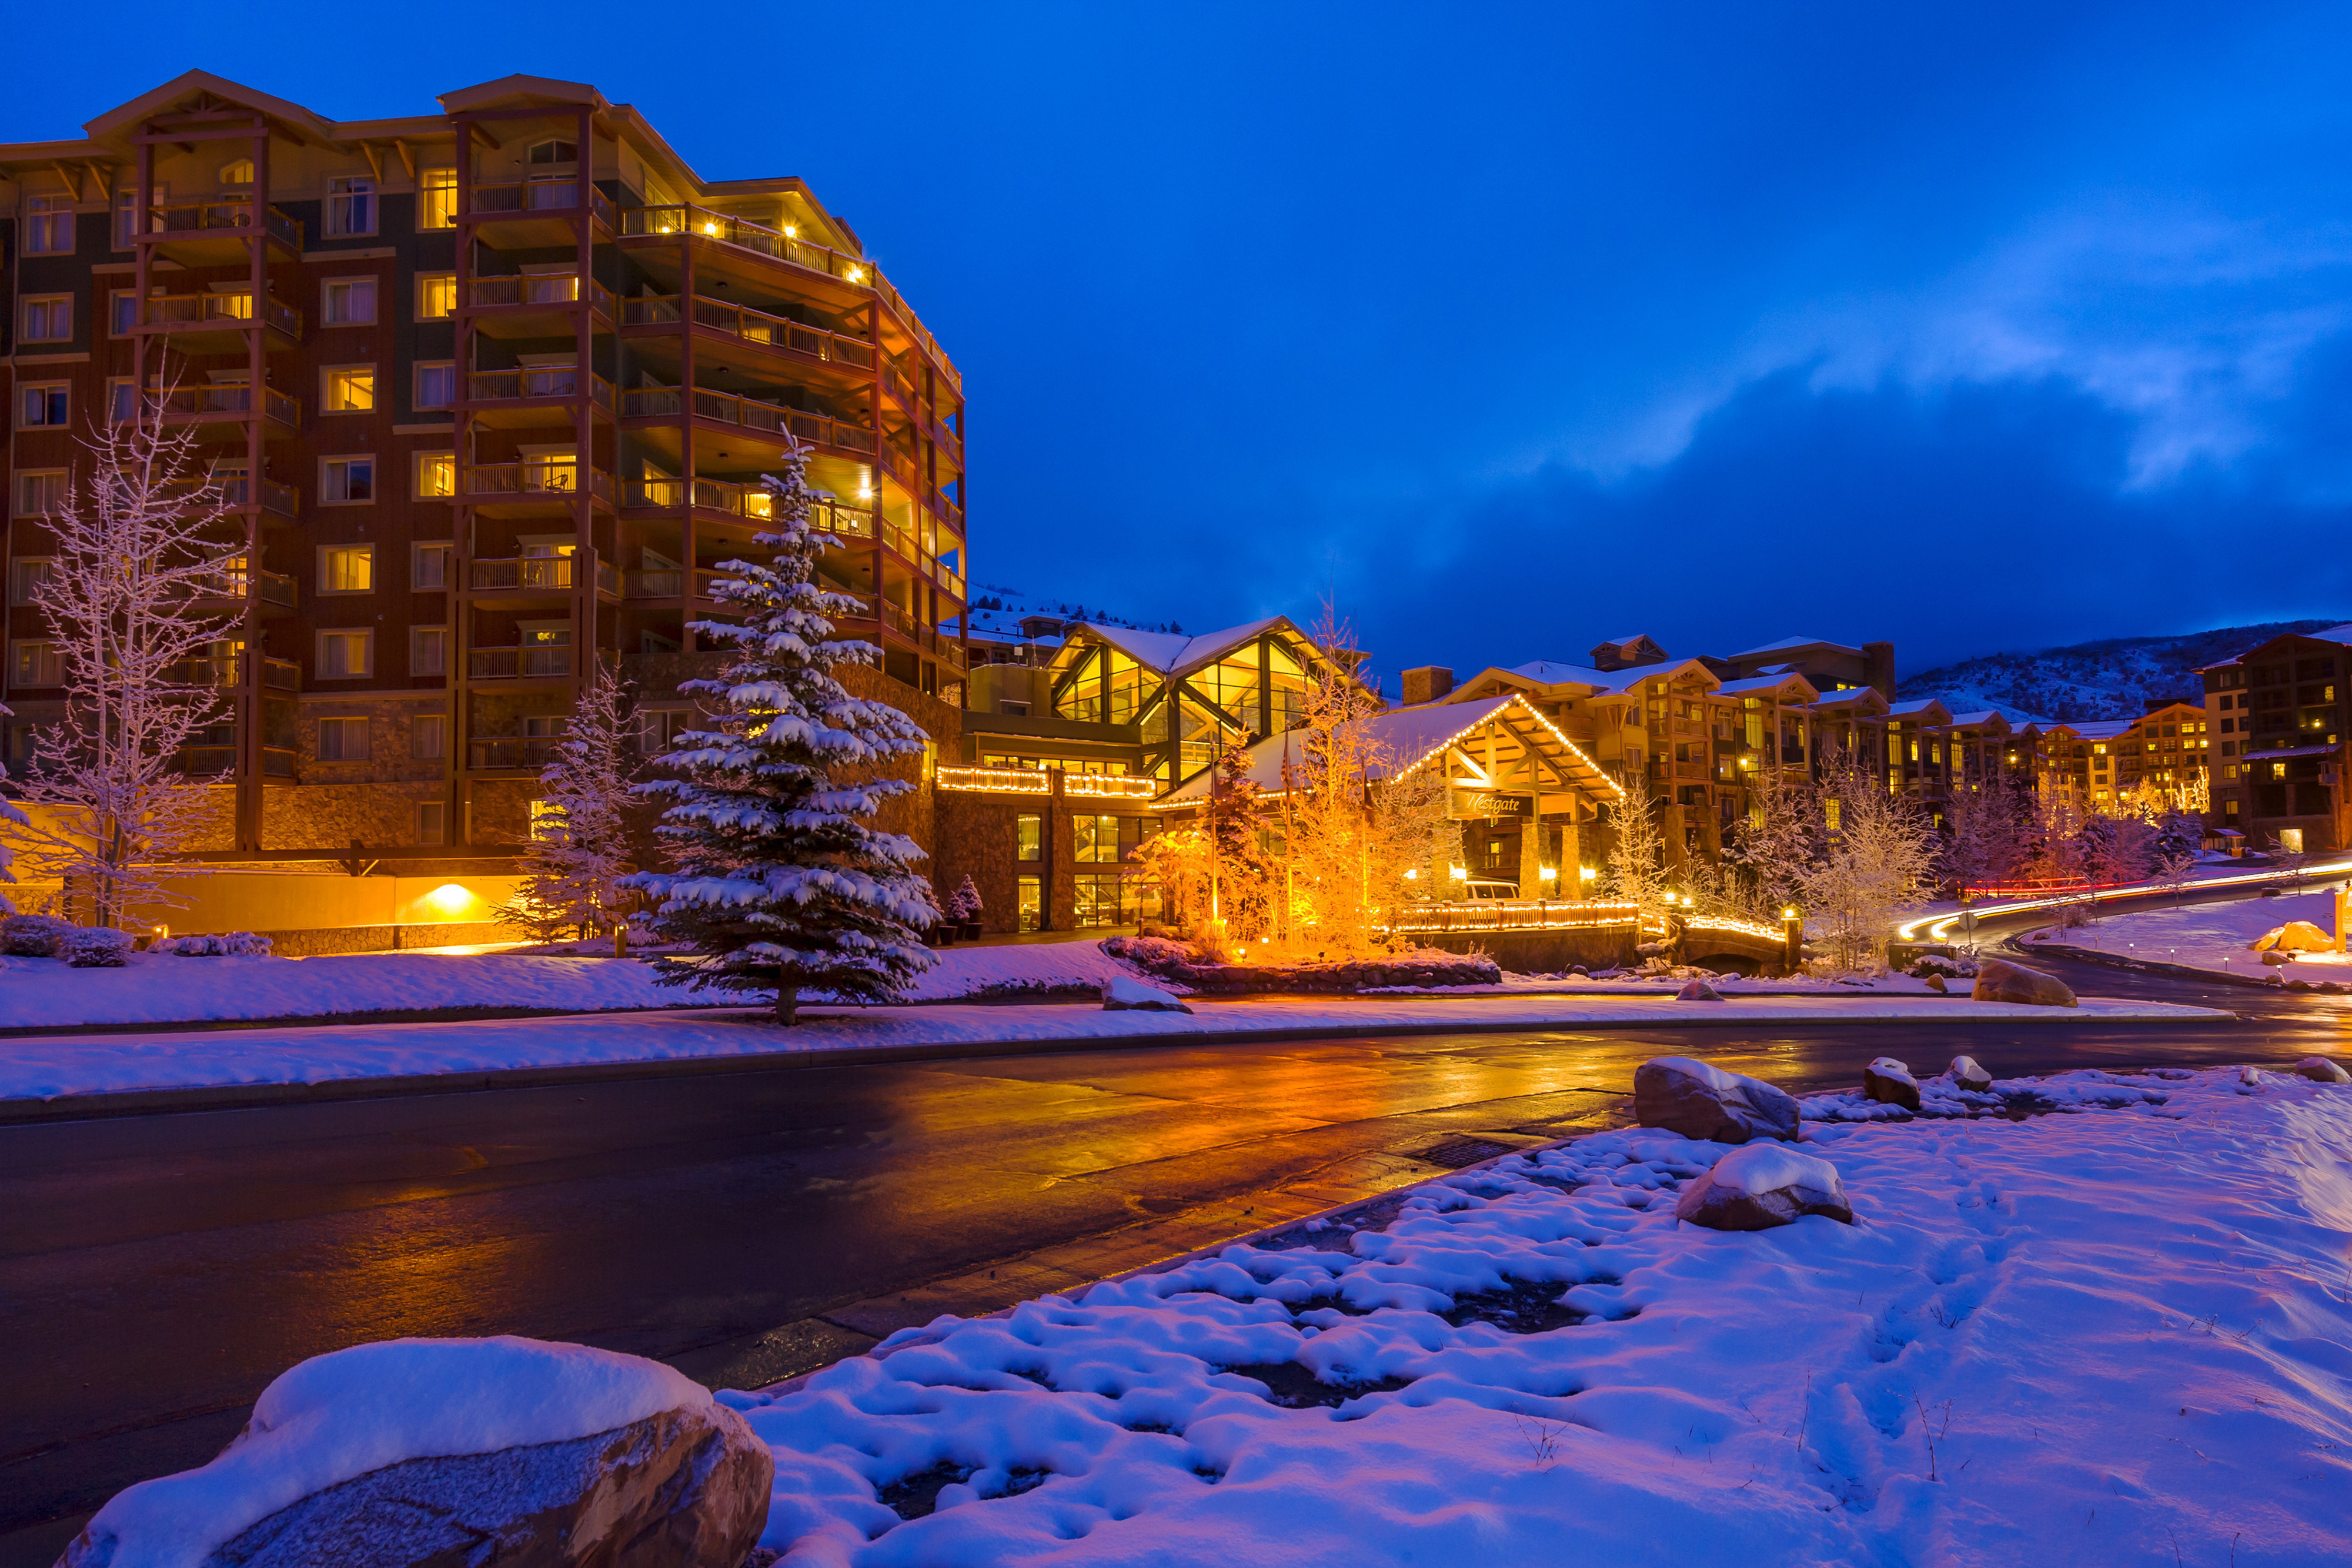 Best Things To Do At Night In Park City Utah | Night At Our Hotel In Park City